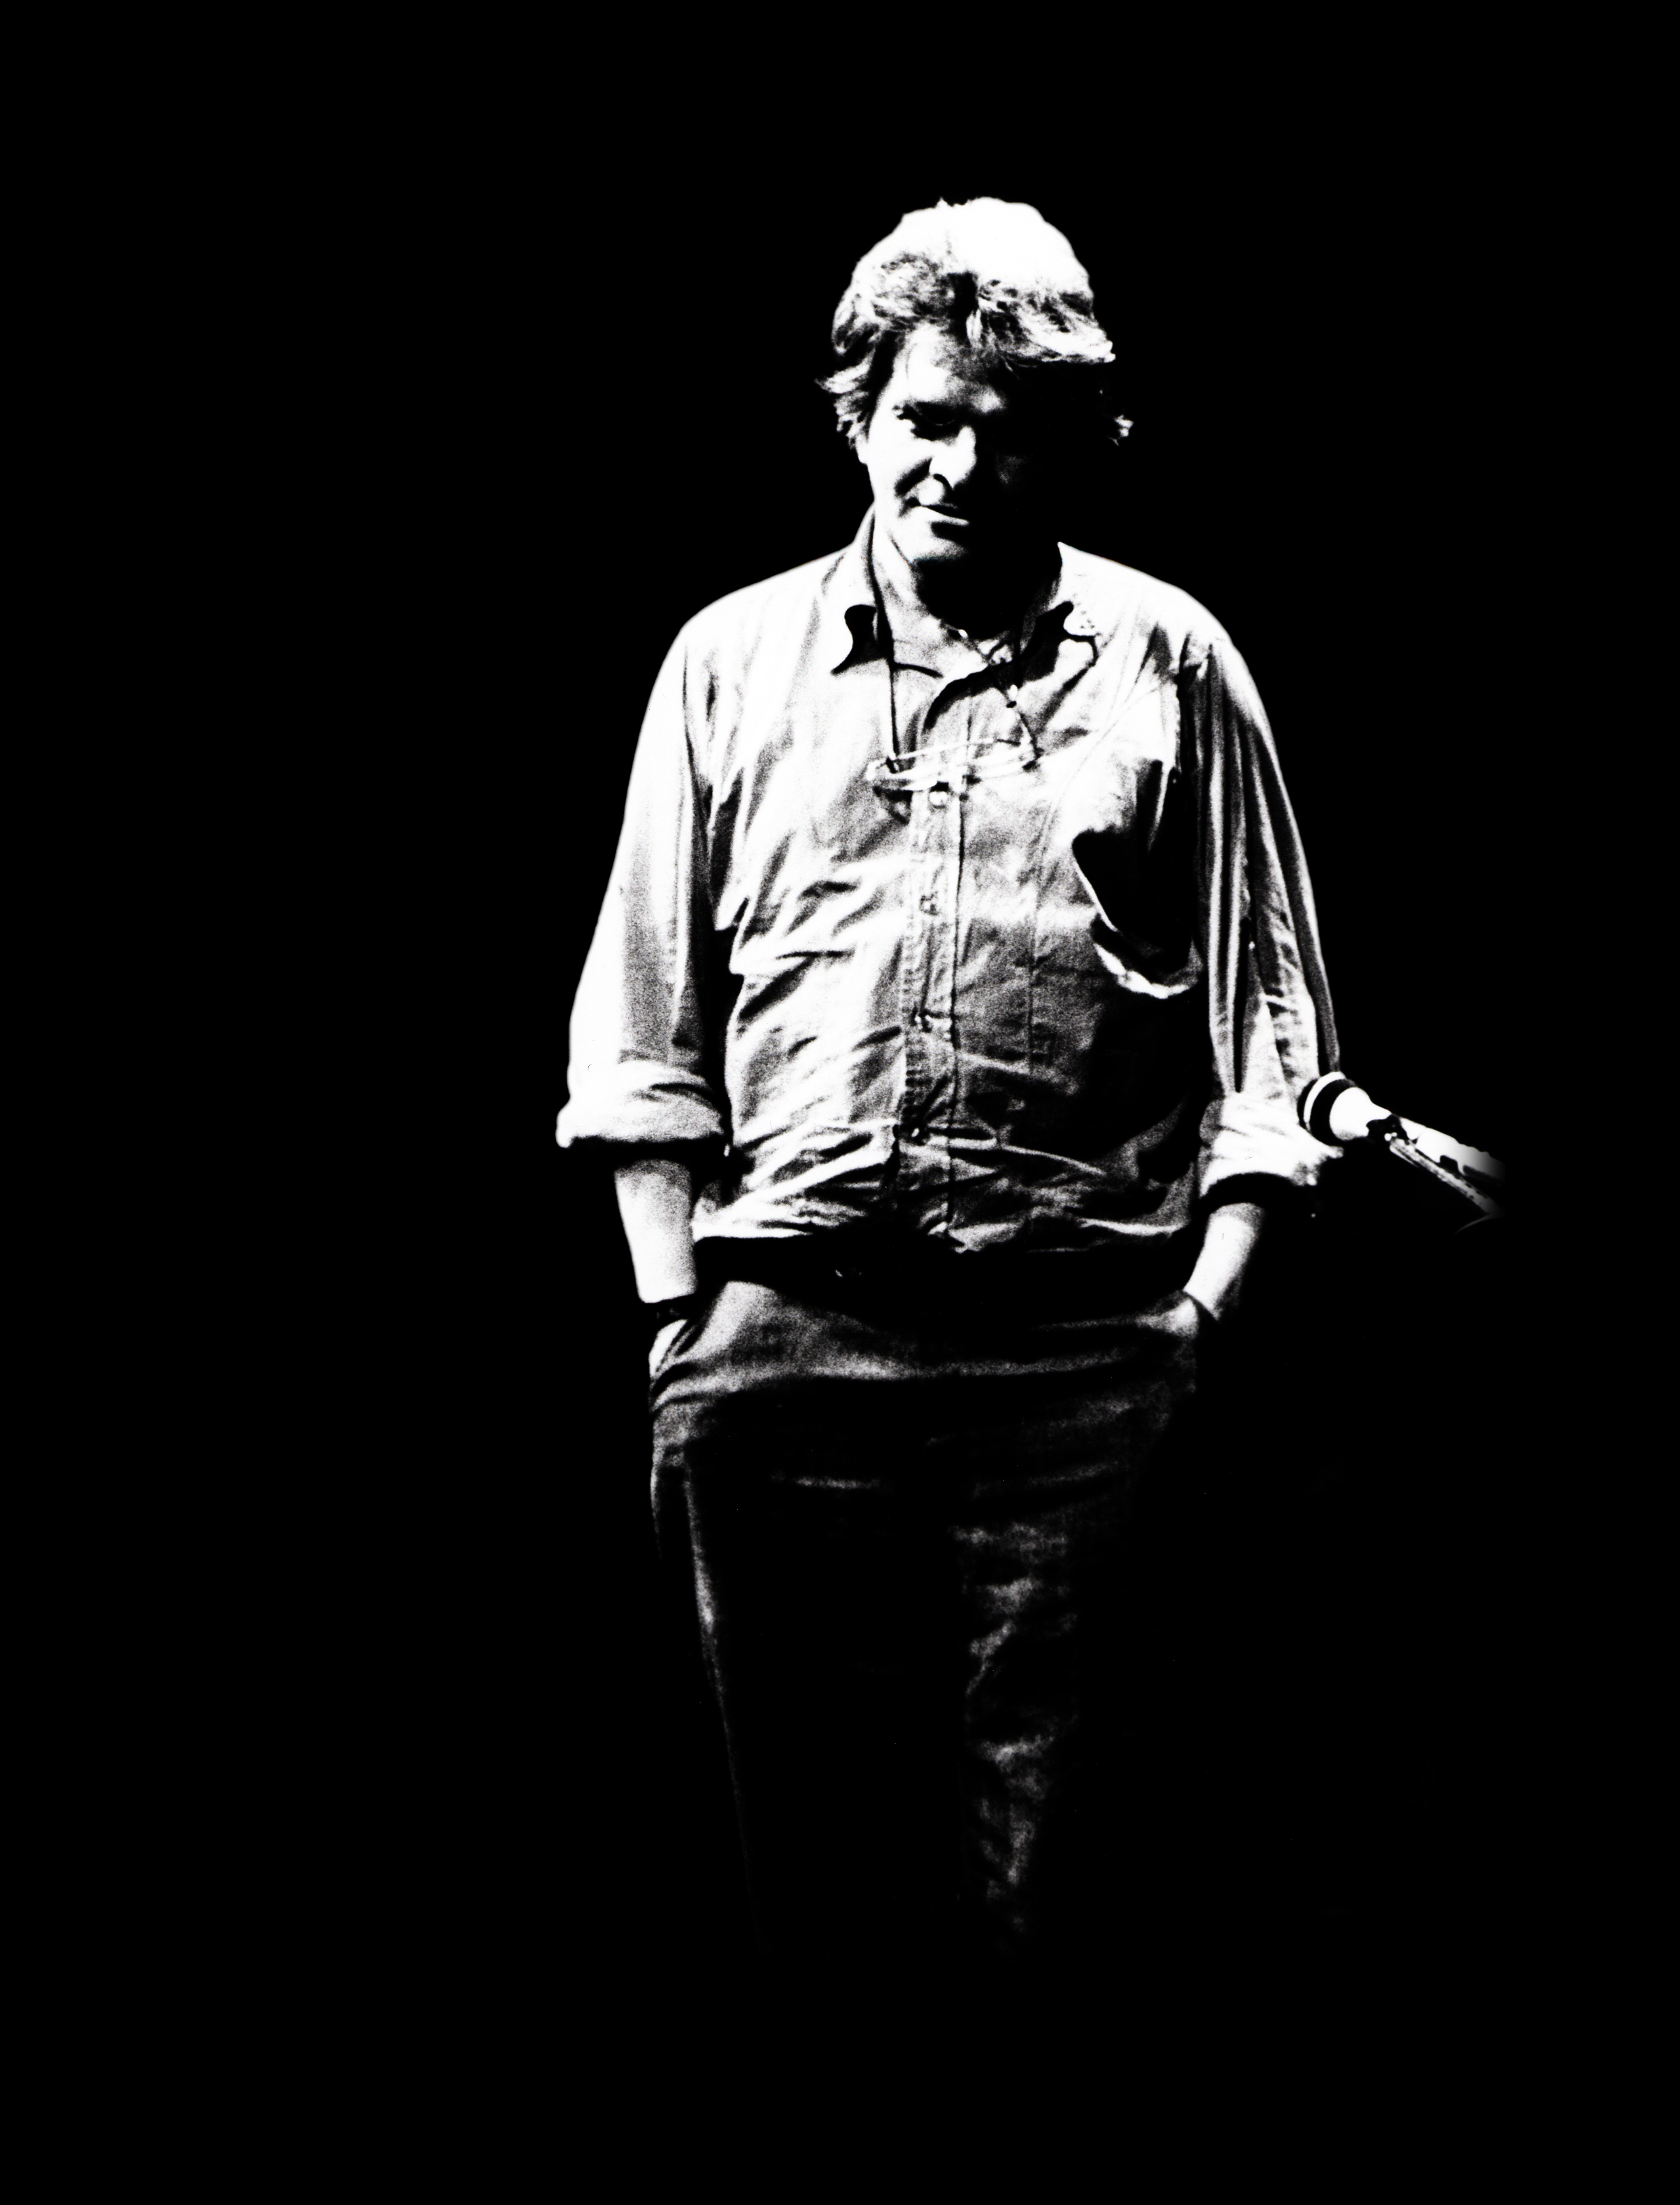 The Life of Gregory Corso